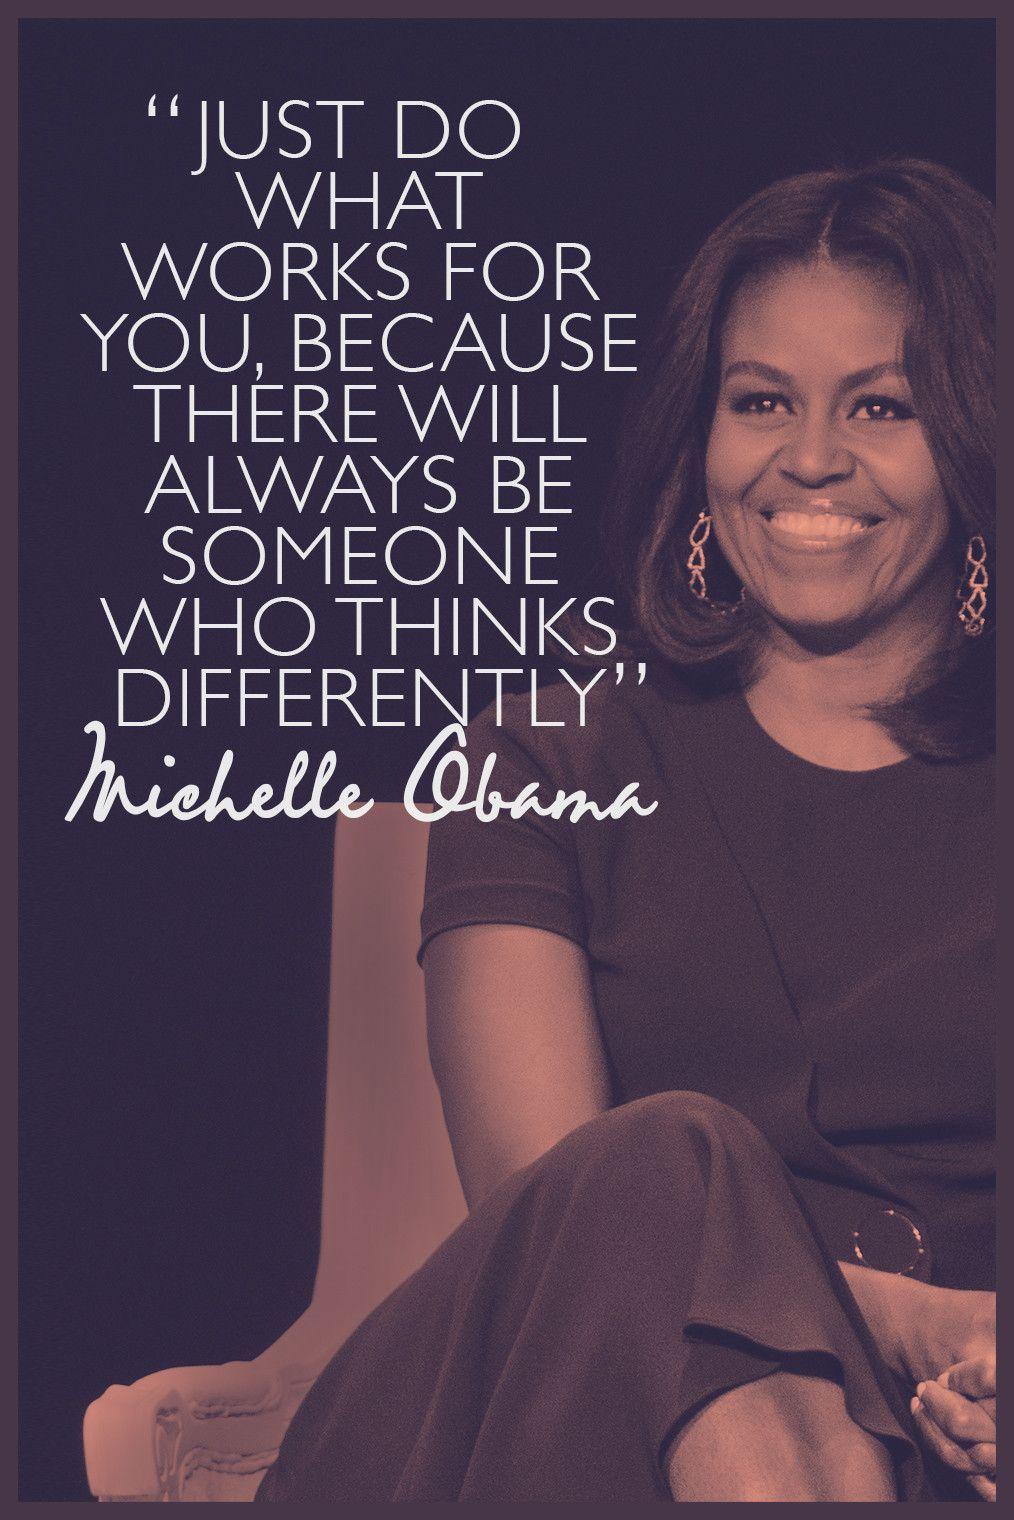 Michelle Obama Quotes Beauteous Just Do What Works For You Because There Will Always Be Someone Who